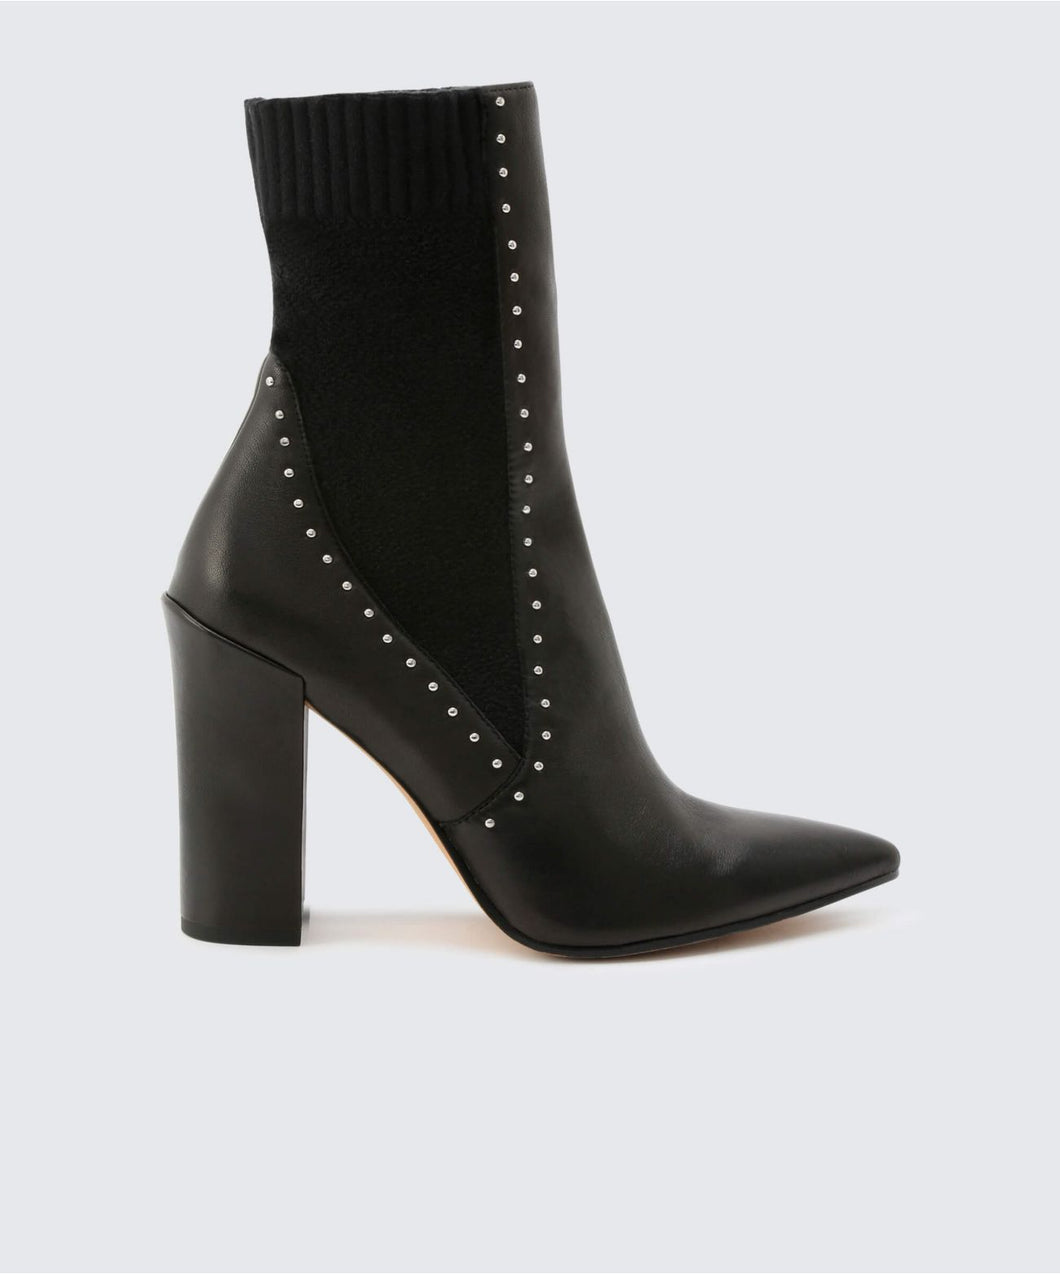 ECHO BOOTIES BLACK -   Dolce Vita